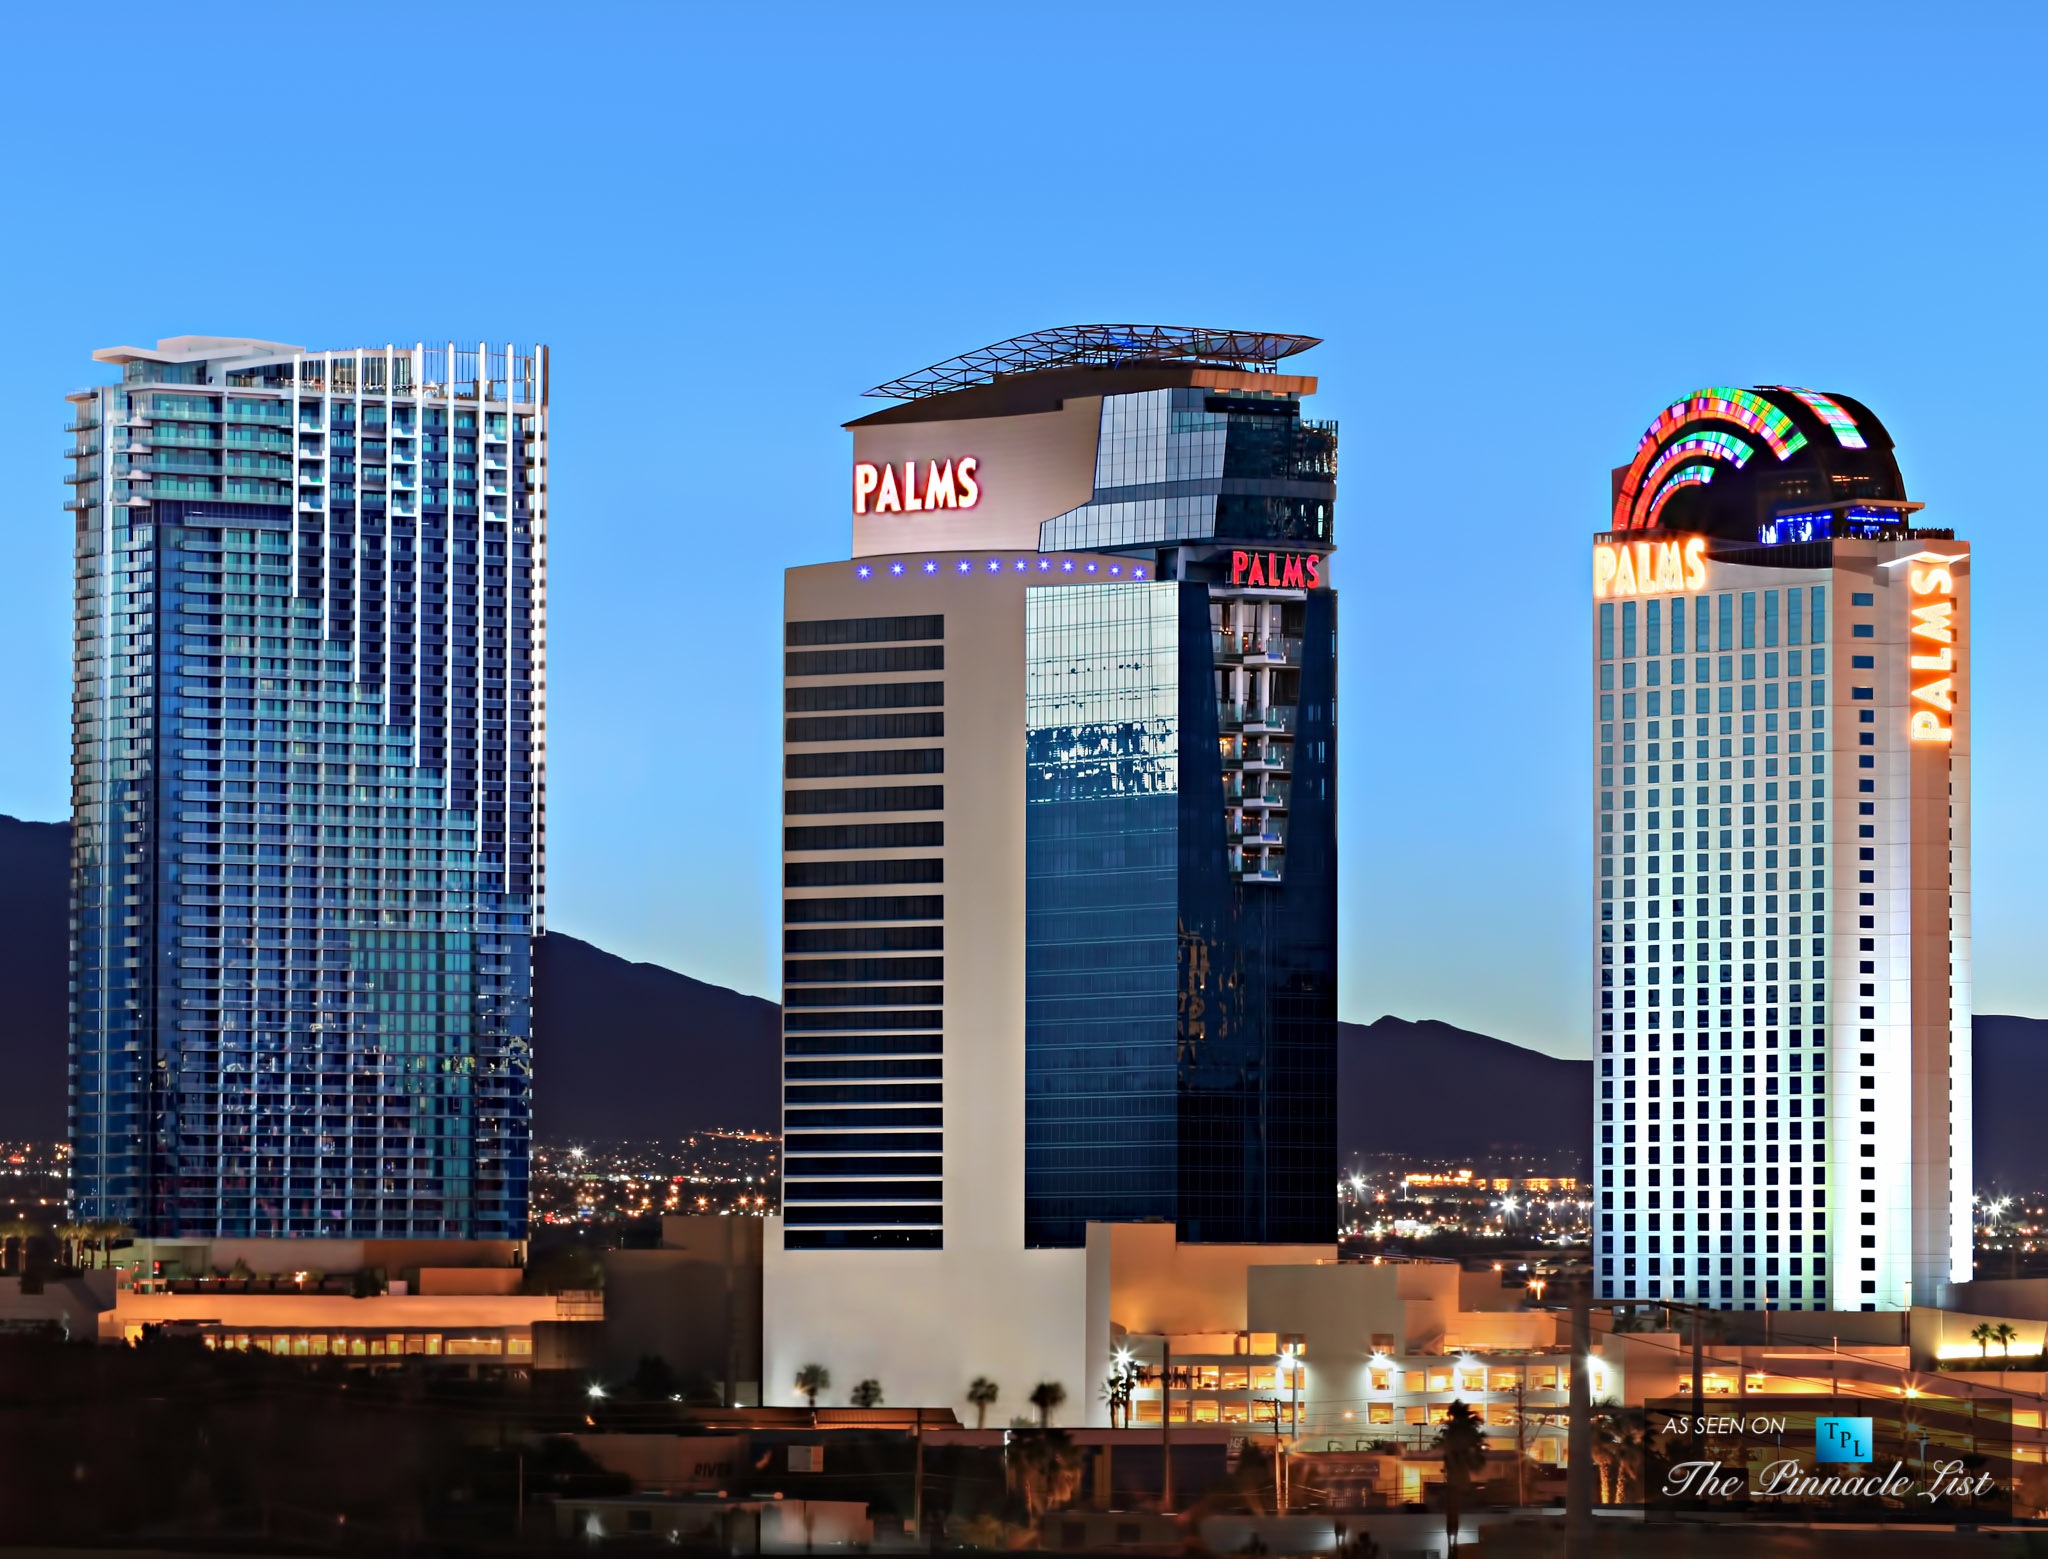 The Palms Casino Resort1